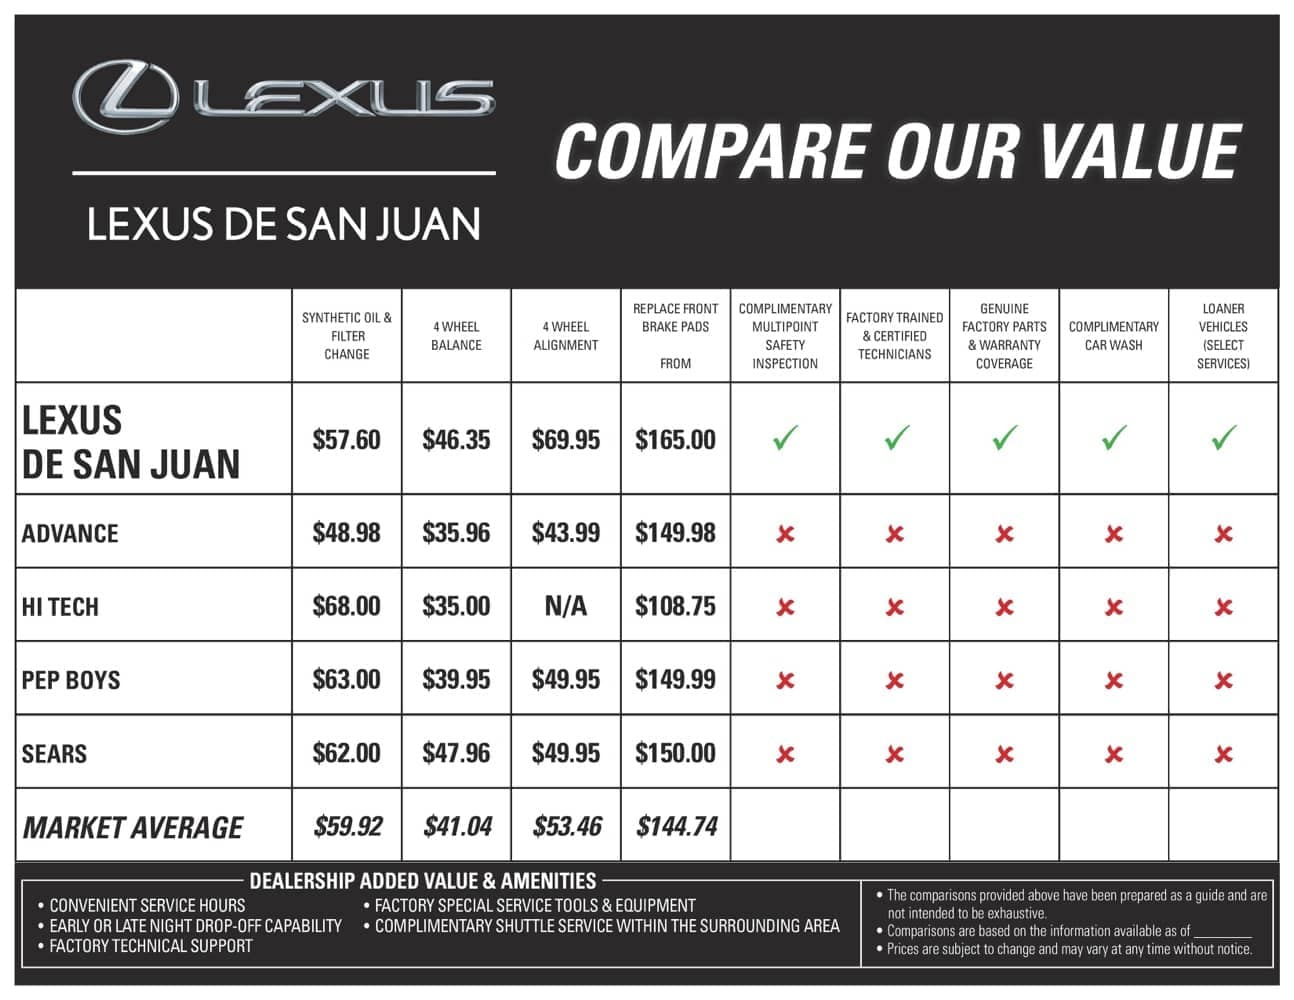 compare-value-lexus-de-san-juan